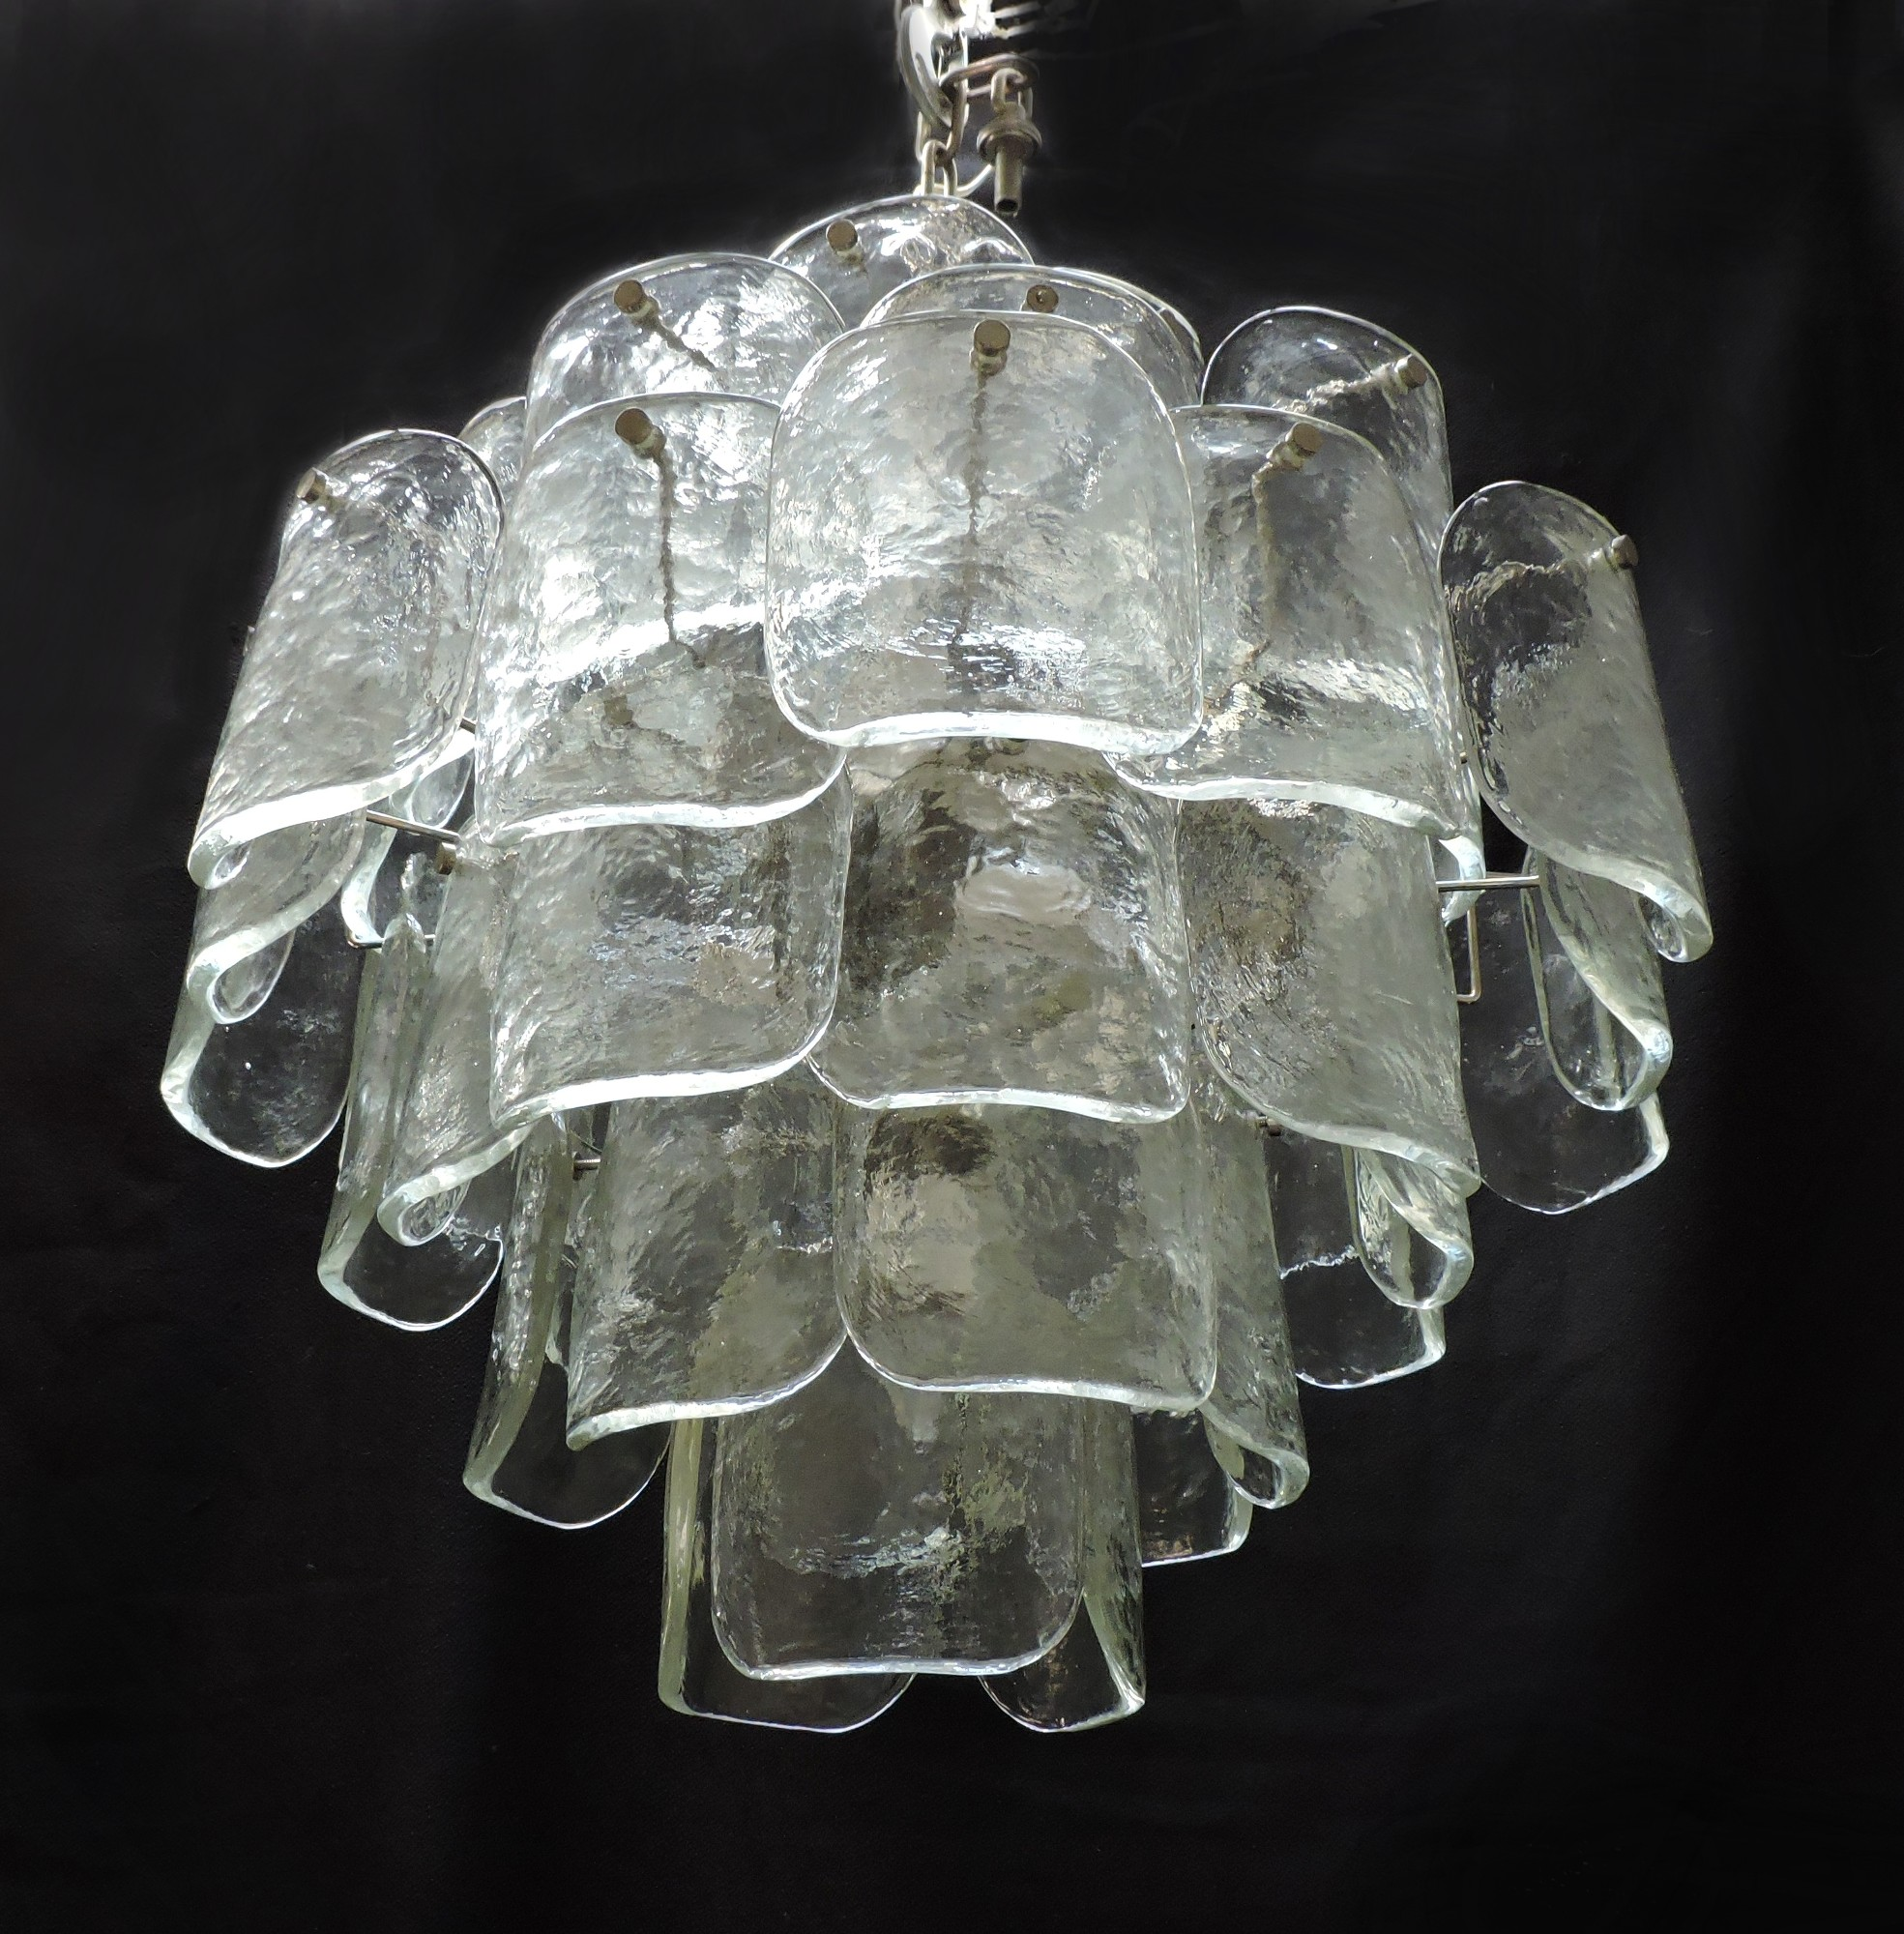 Large mid century italian modern camer glass chandelier murano large and unique chandelier made in italy by high quality lighting manufacturer camer this beautiful chandelier has 49 textured and thick clear glass arubaitofo Images